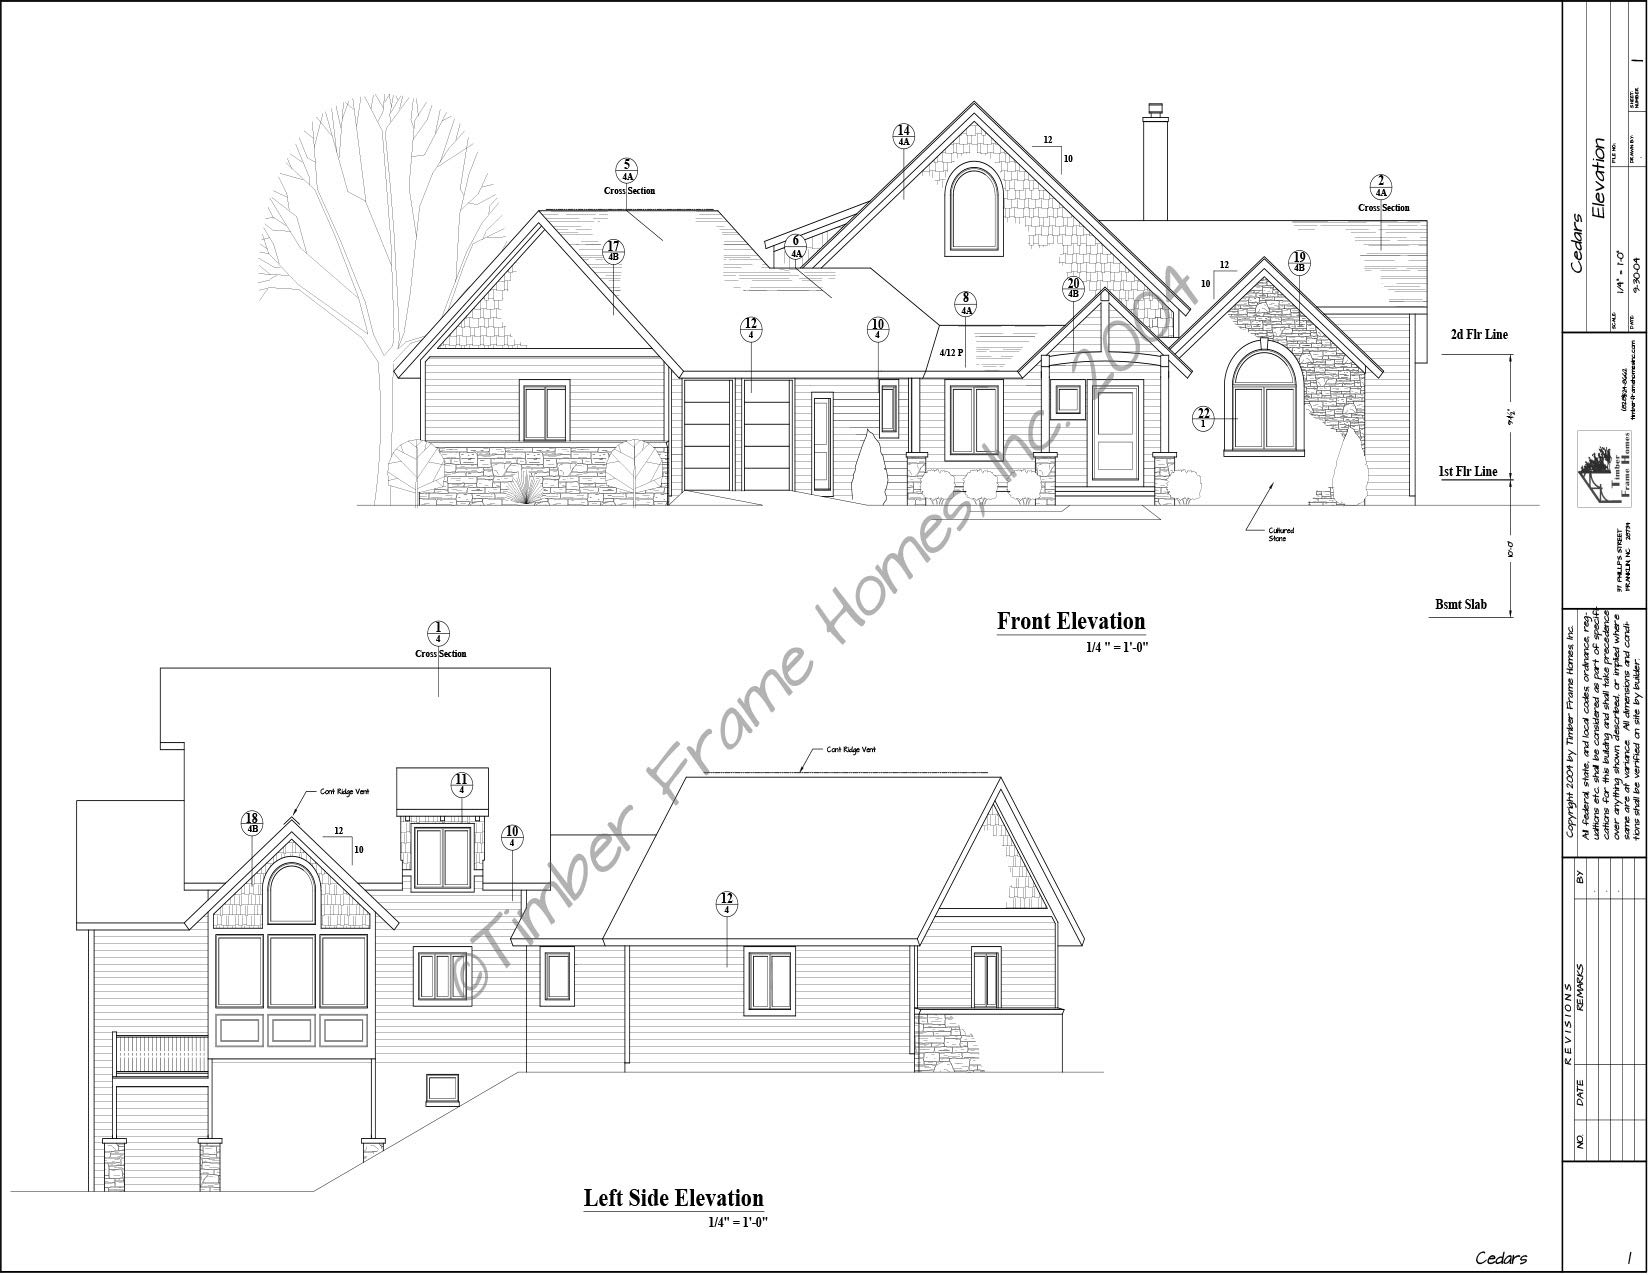 Home Plans - The Cedars Timber Frame (DESIGN PROOF) by TimberStead